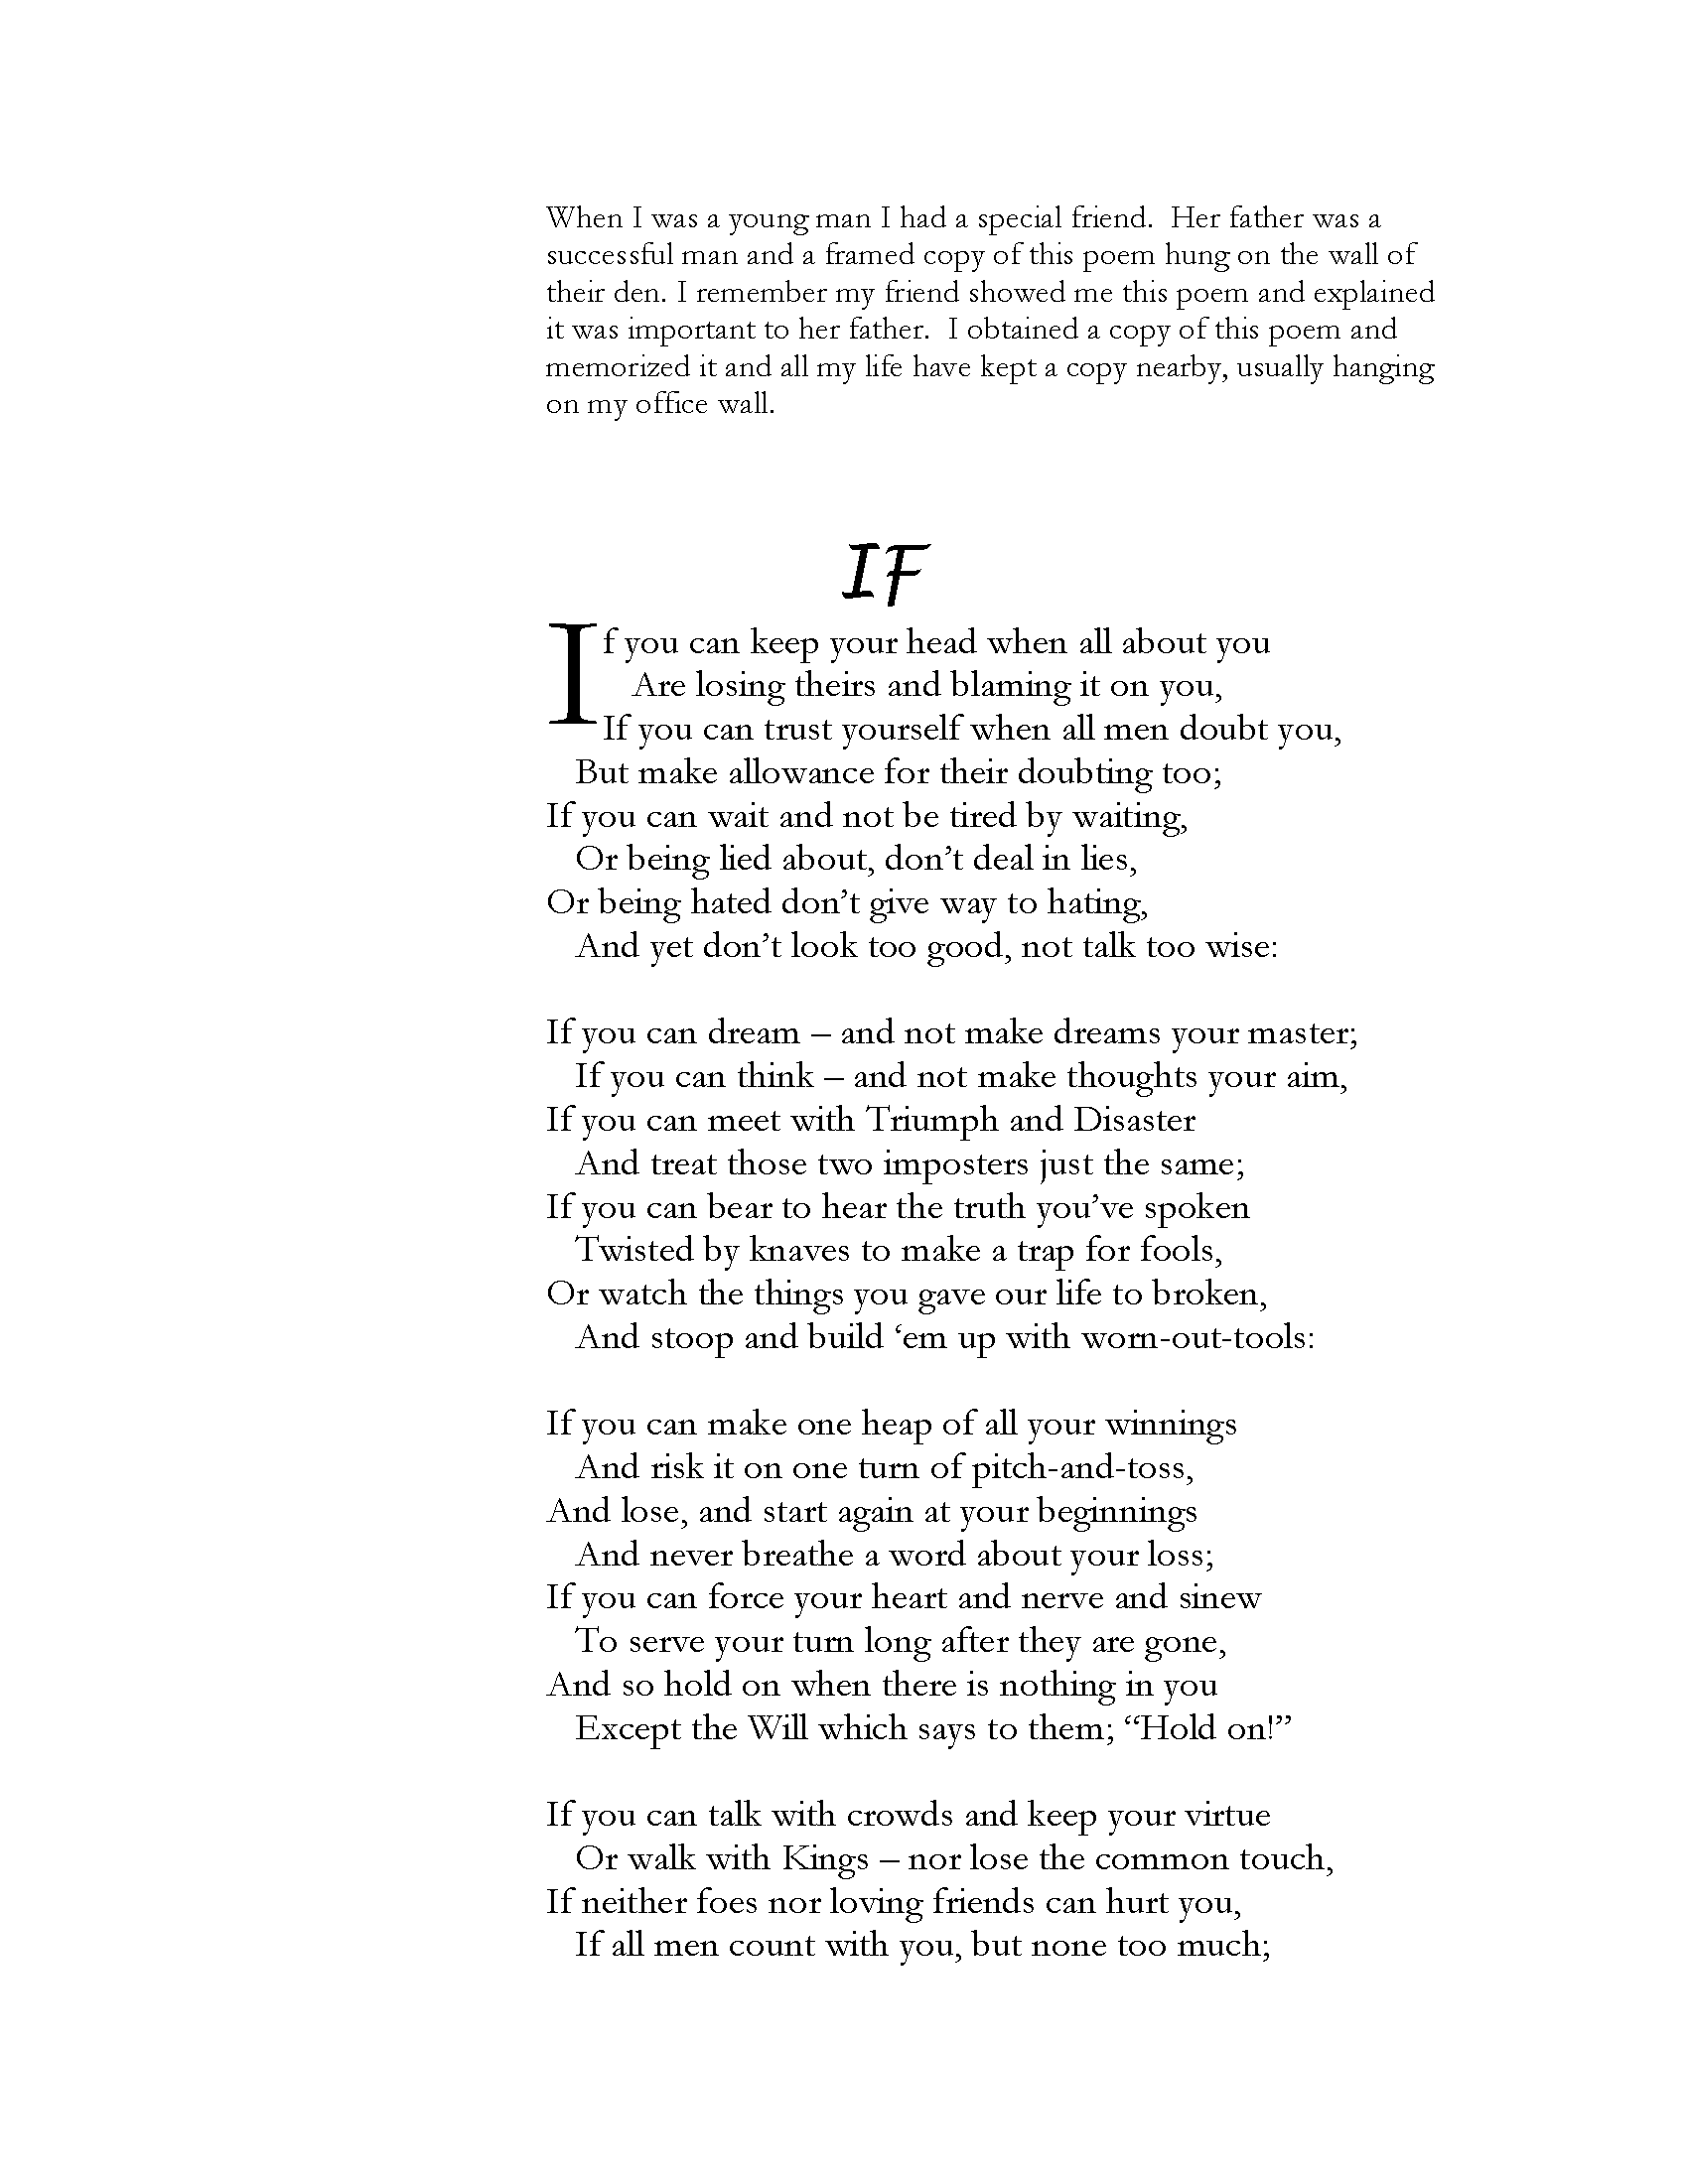 Poem about IF